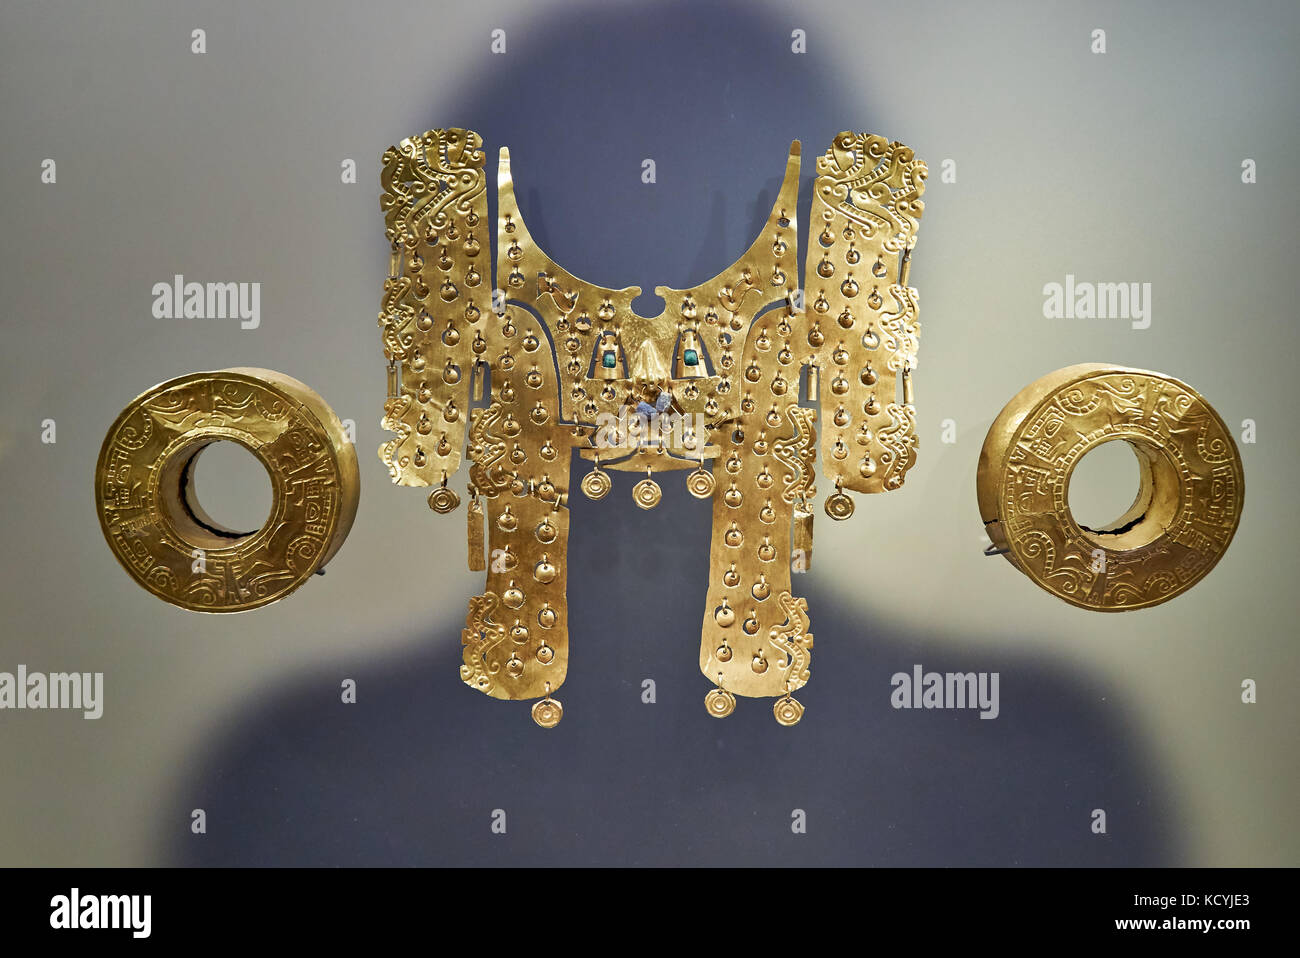 Gold museum stock photos gold museum stock images alamy for Amida house istanbul